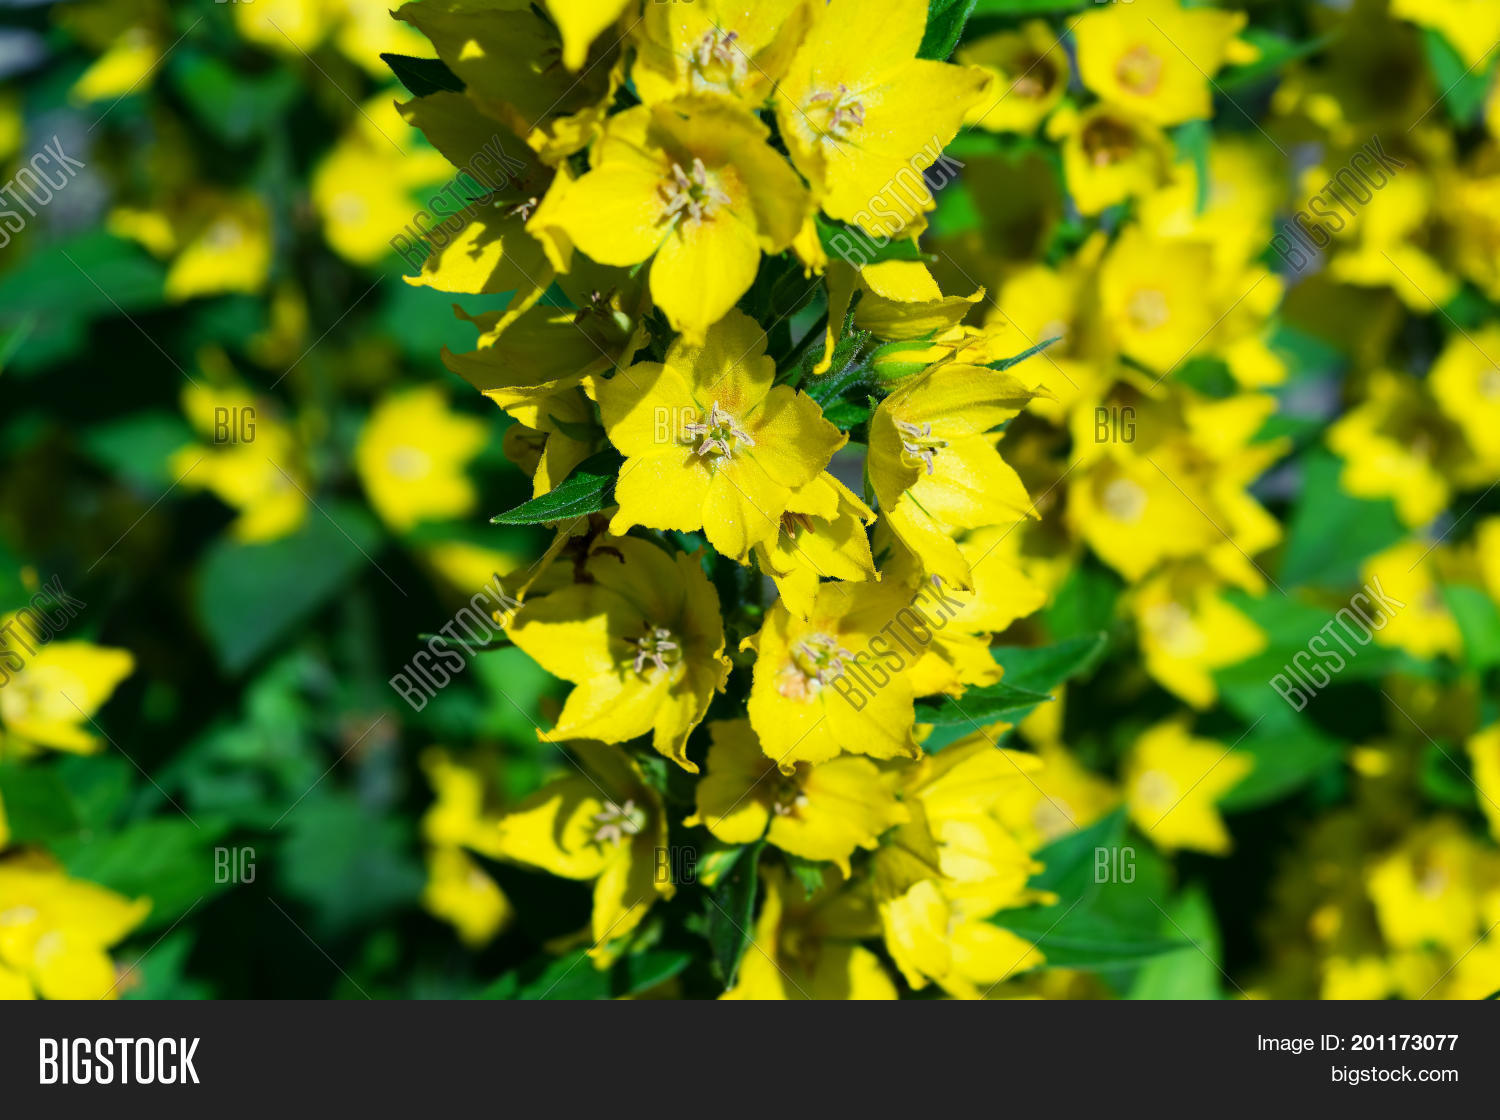 Branches Beautiful Image Photo Free Trial Bigstock